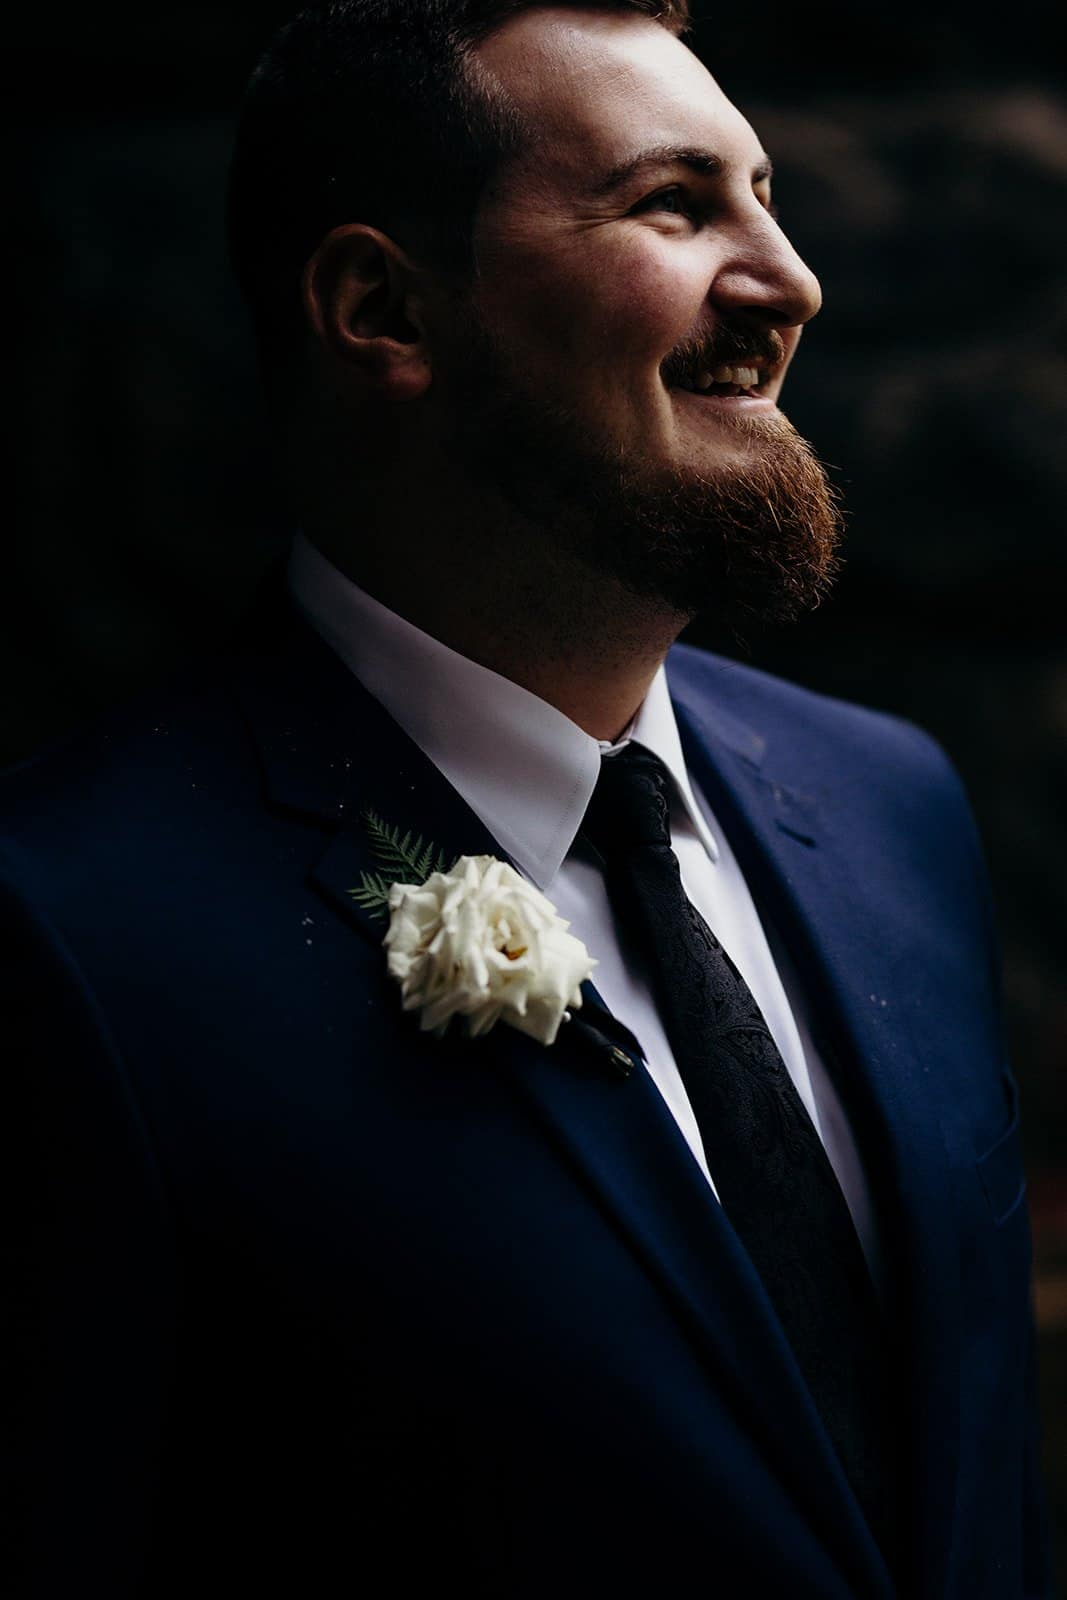 groom smiling and looking into the light